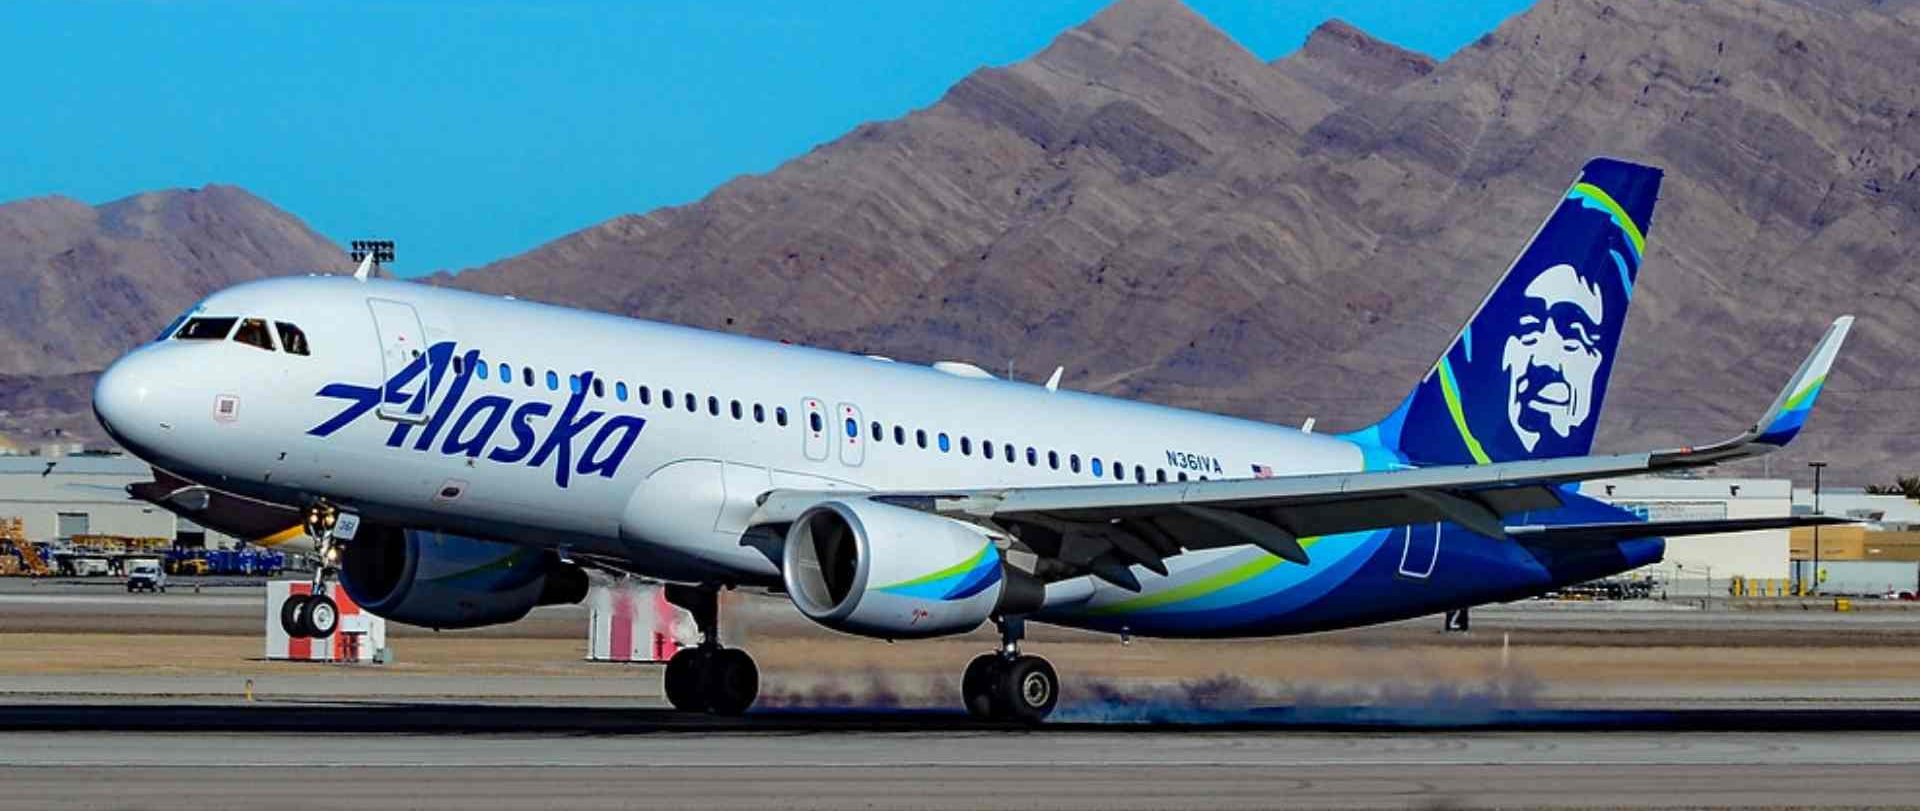 Alaska Airlines New Service: San Francisco to 3 Mexican Cities